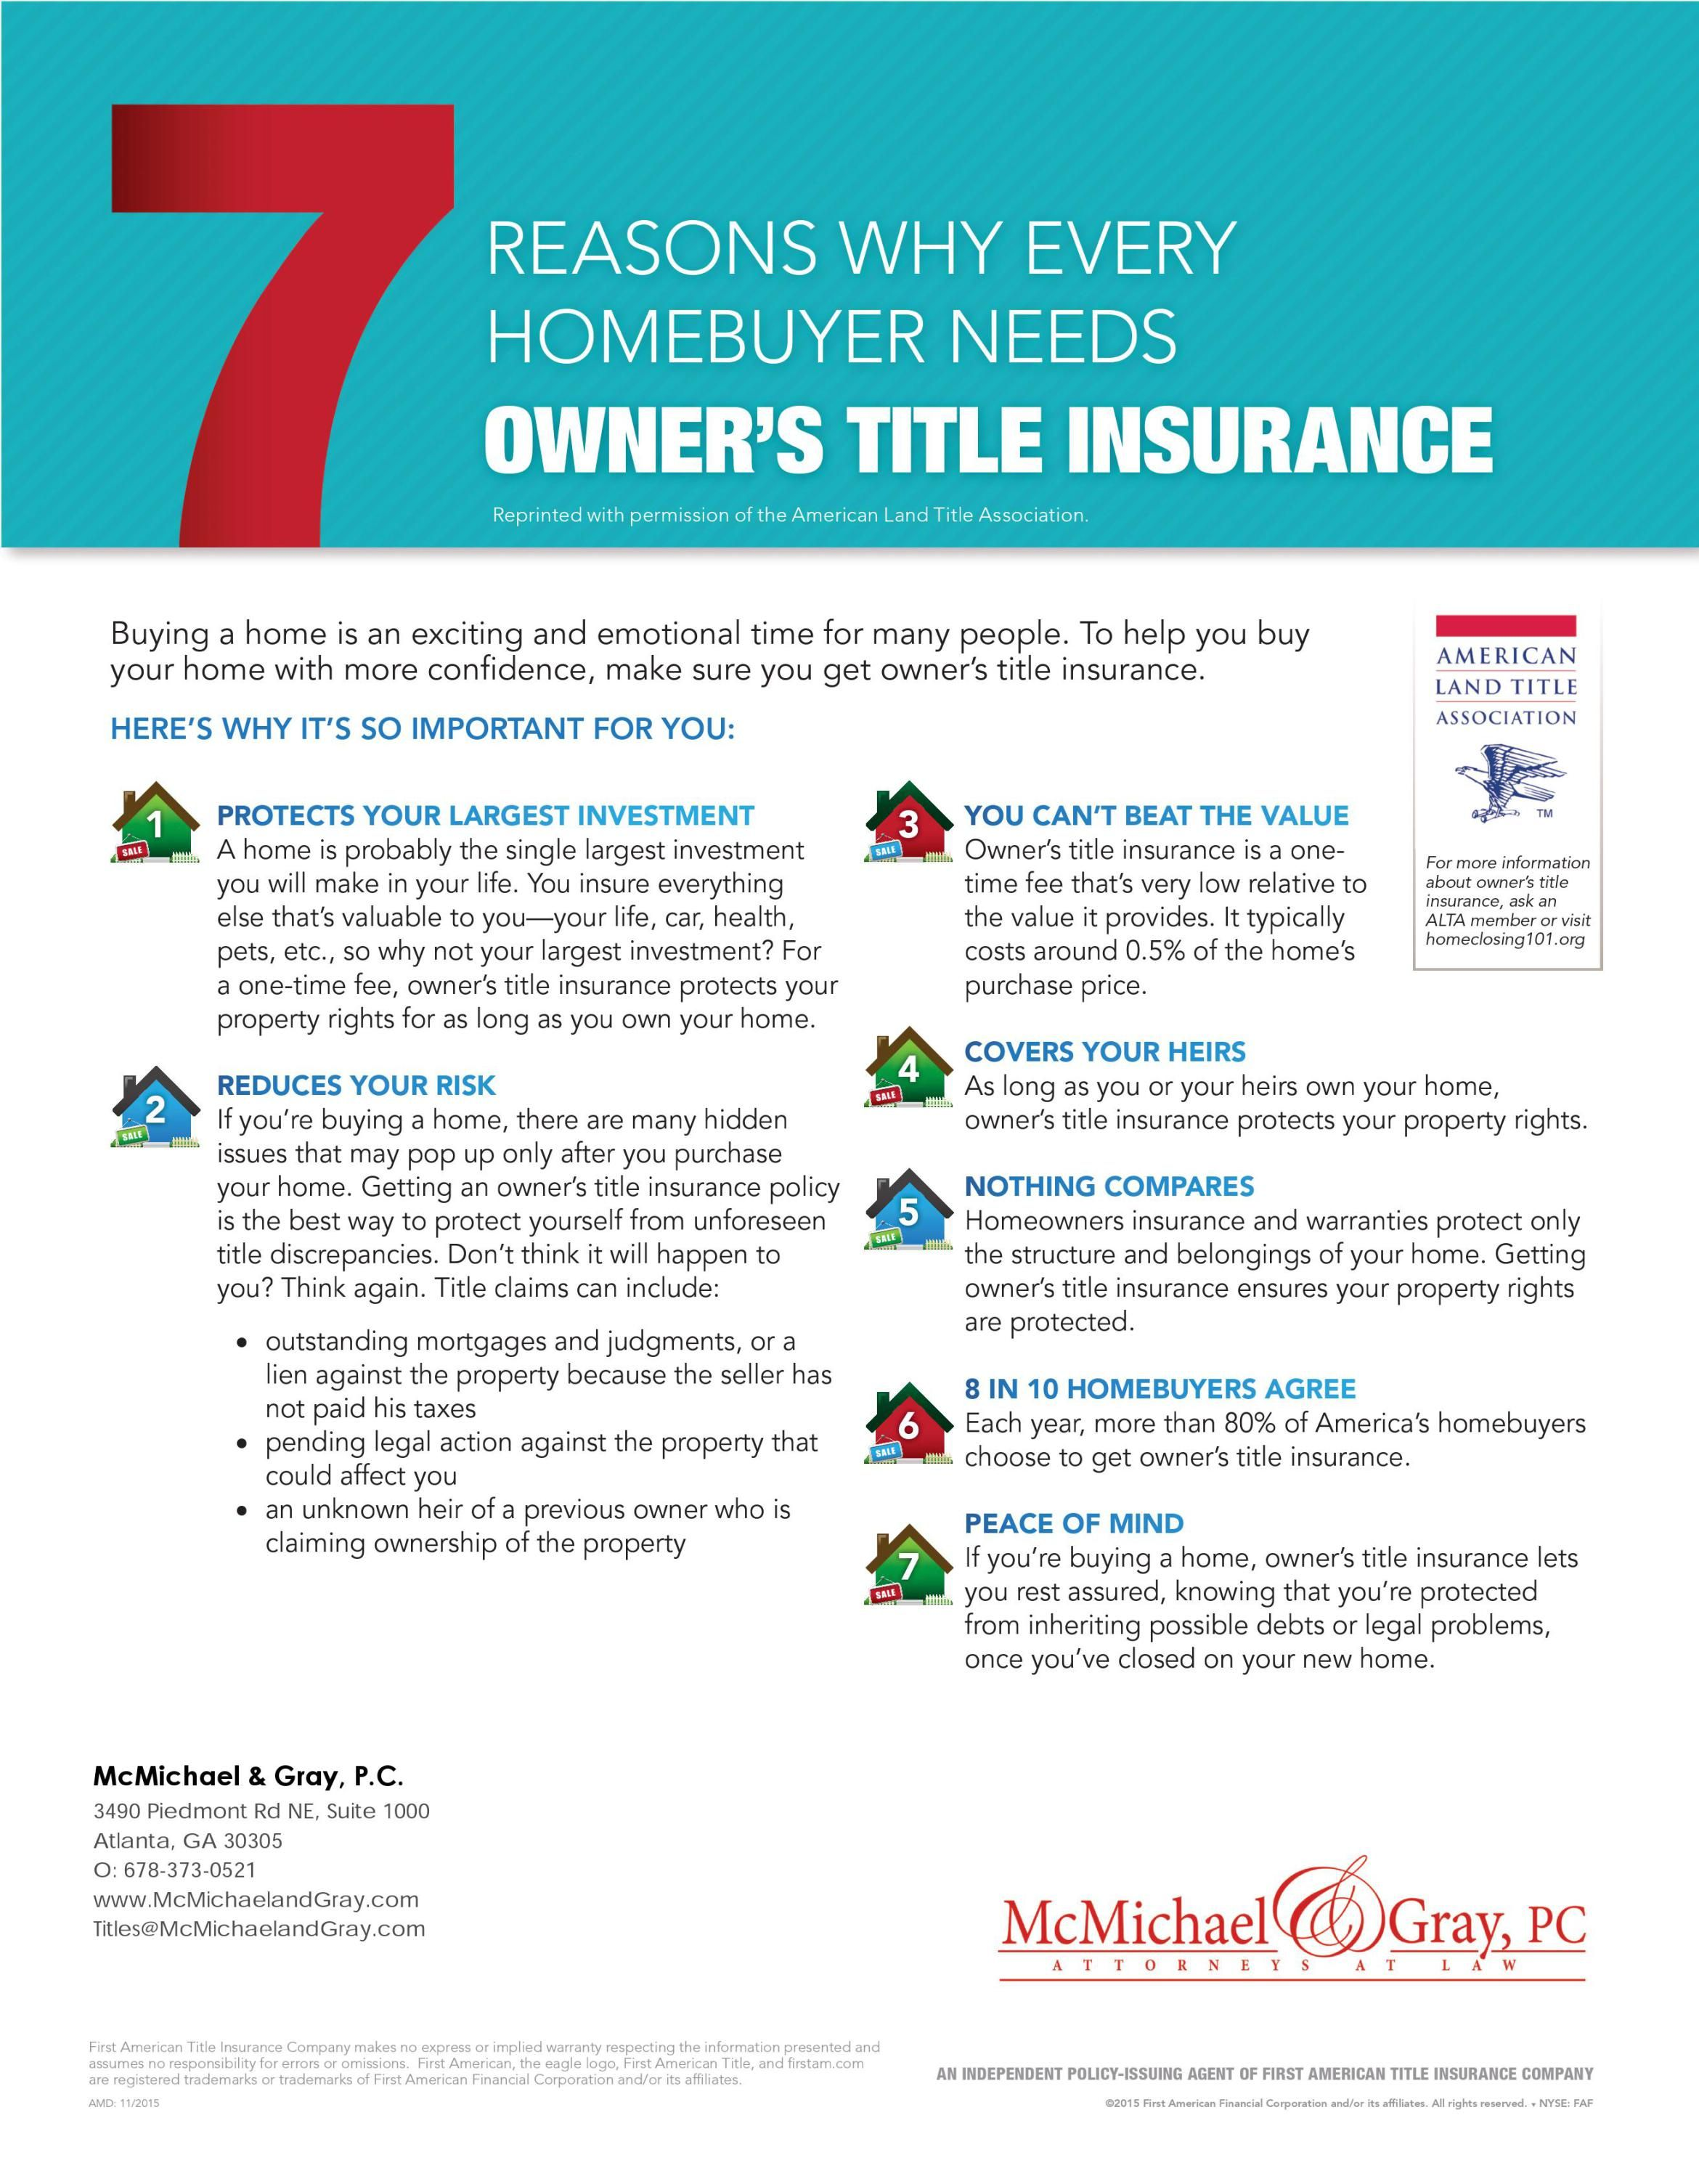 Ownerstitleinsurance Title Insurance Commercial Insurance